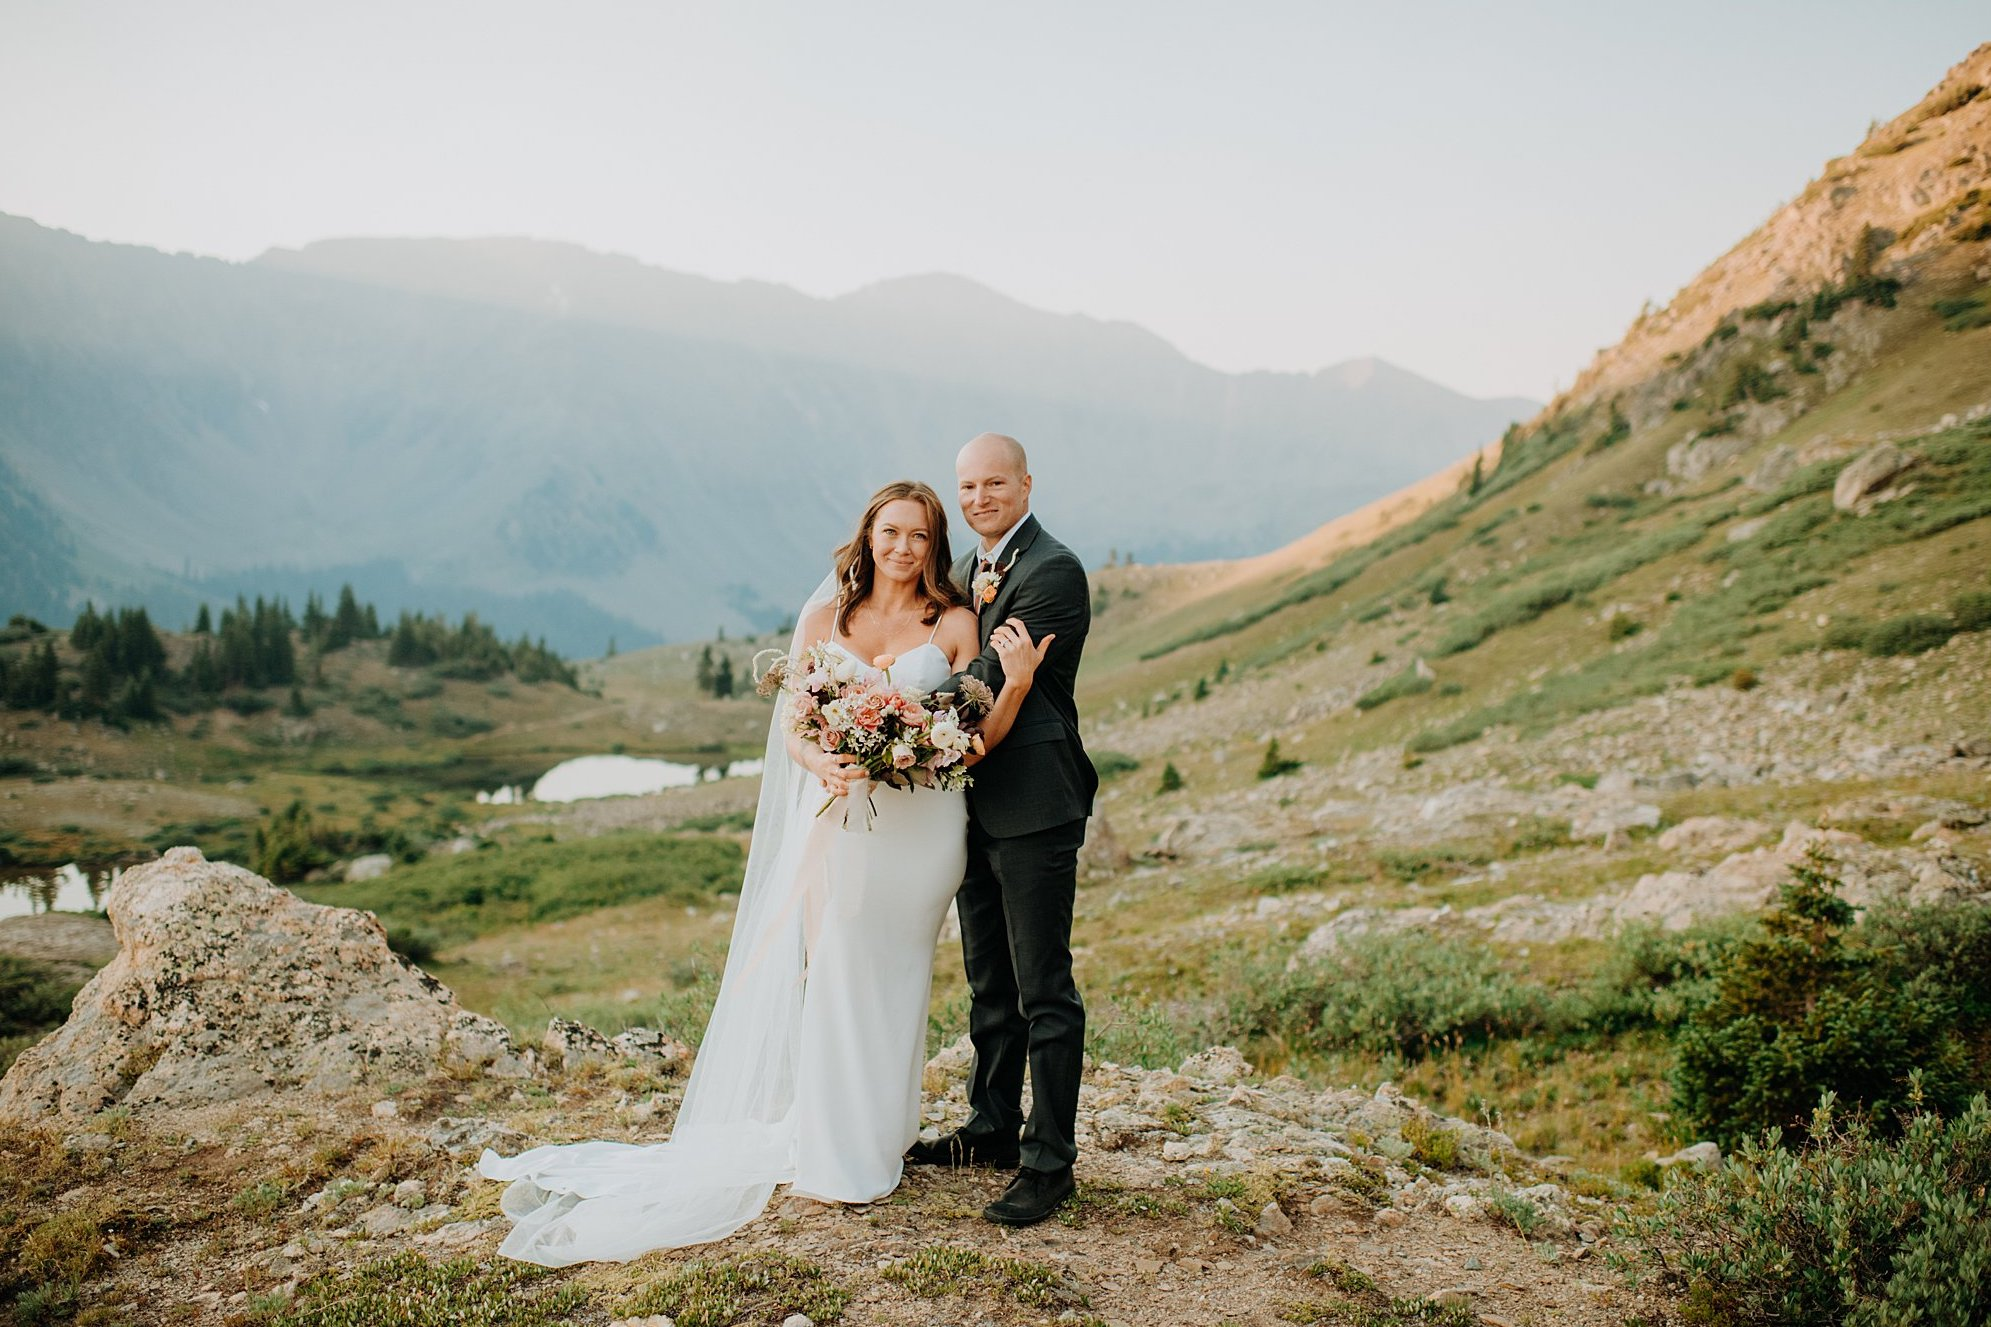 Loveland Pass Elopement Packages